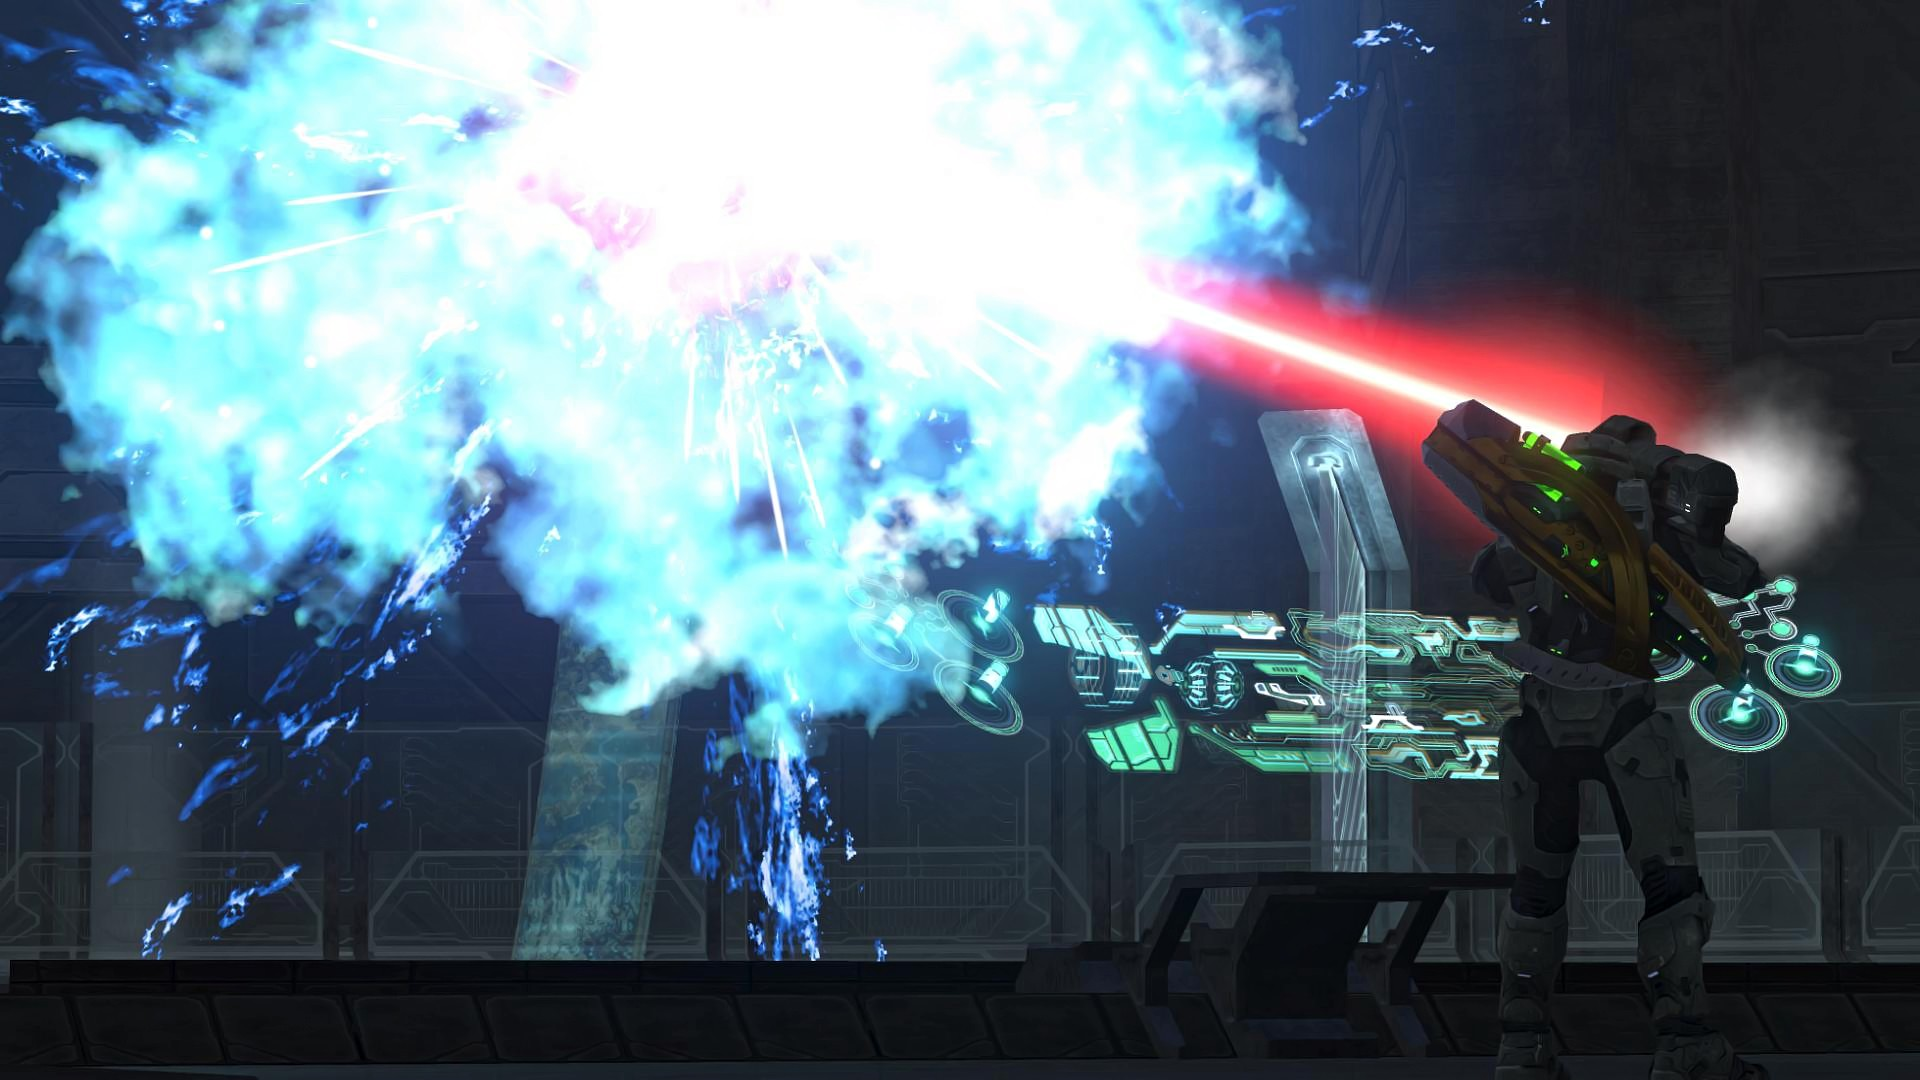 Image – Halo-3-Wallpaper-HALO-chapter-1080p-232-343-Guilty-Spark-VS-MASTER- CHIEF.jpg | Halo Nation | FANDOM powered by Wikia